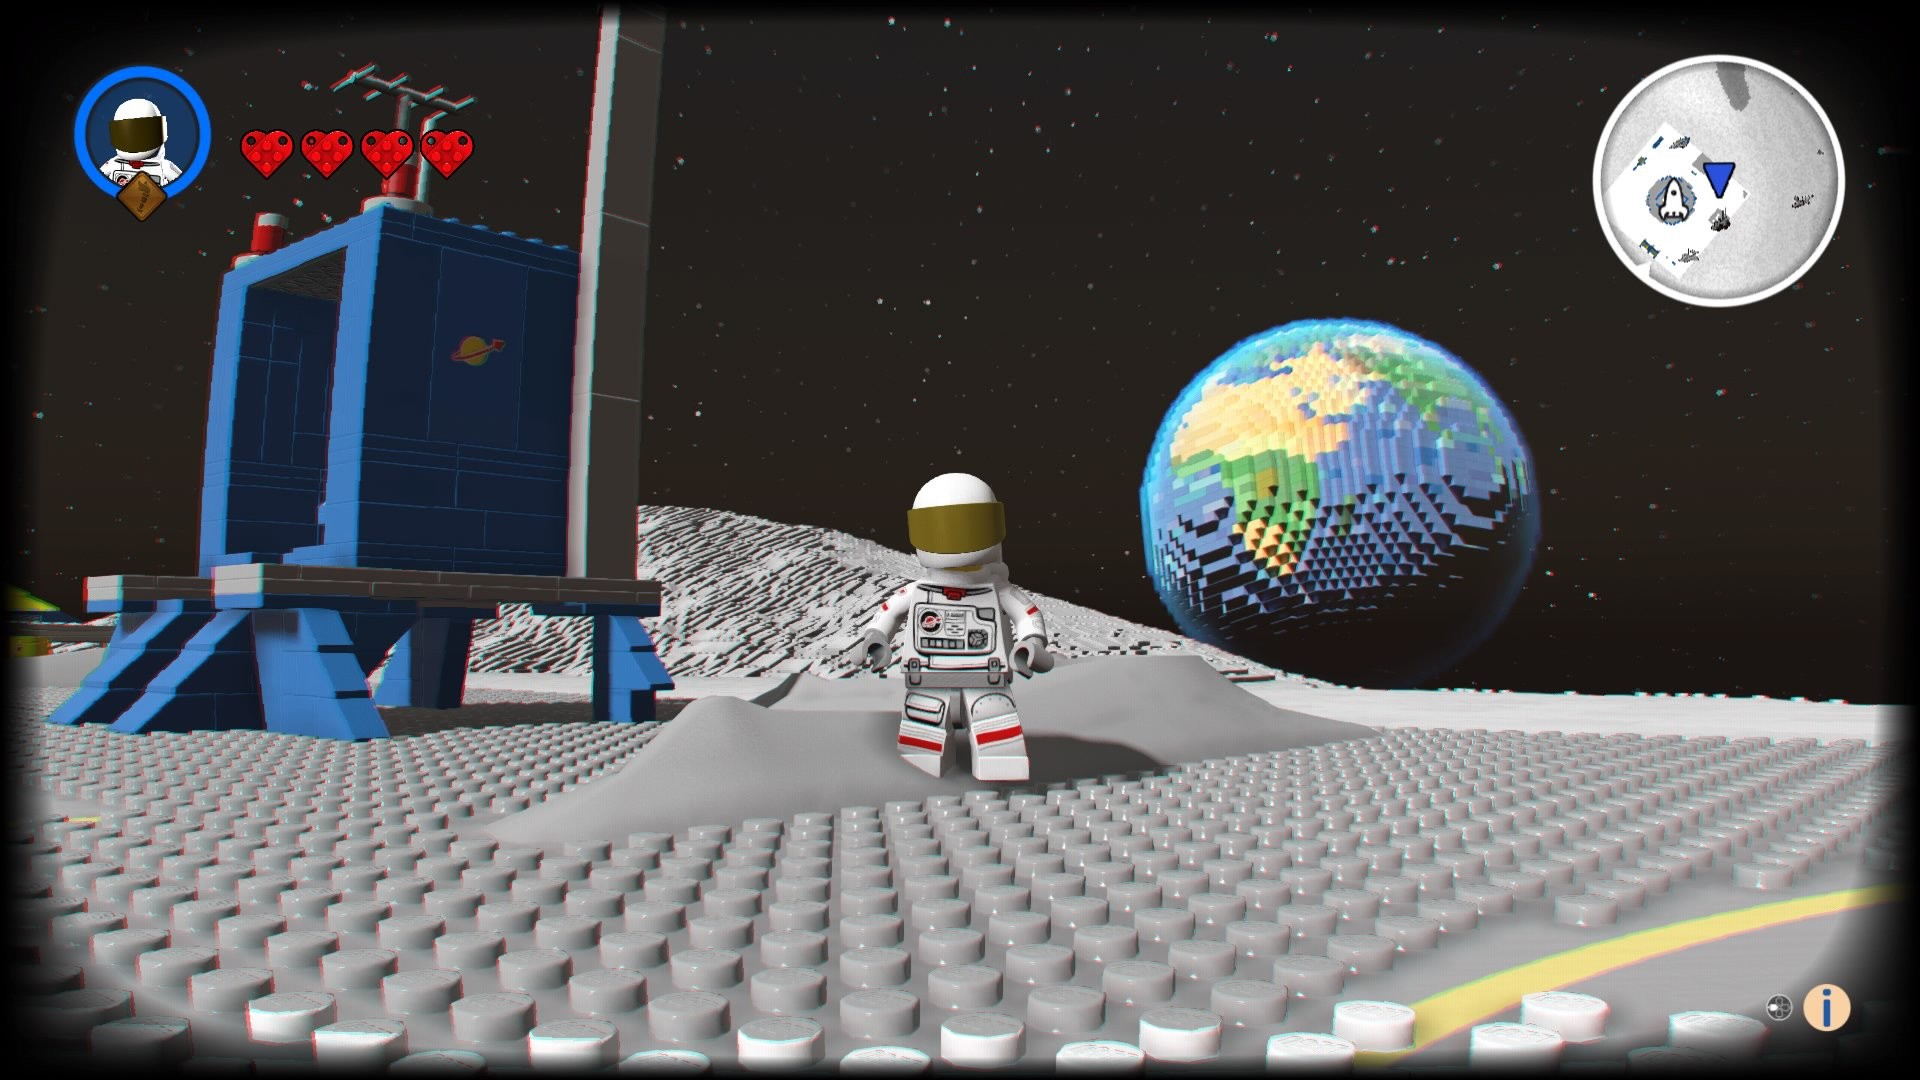 Lego Worlds' Knows What It Means to Bring Imagination to Life - Waypoint